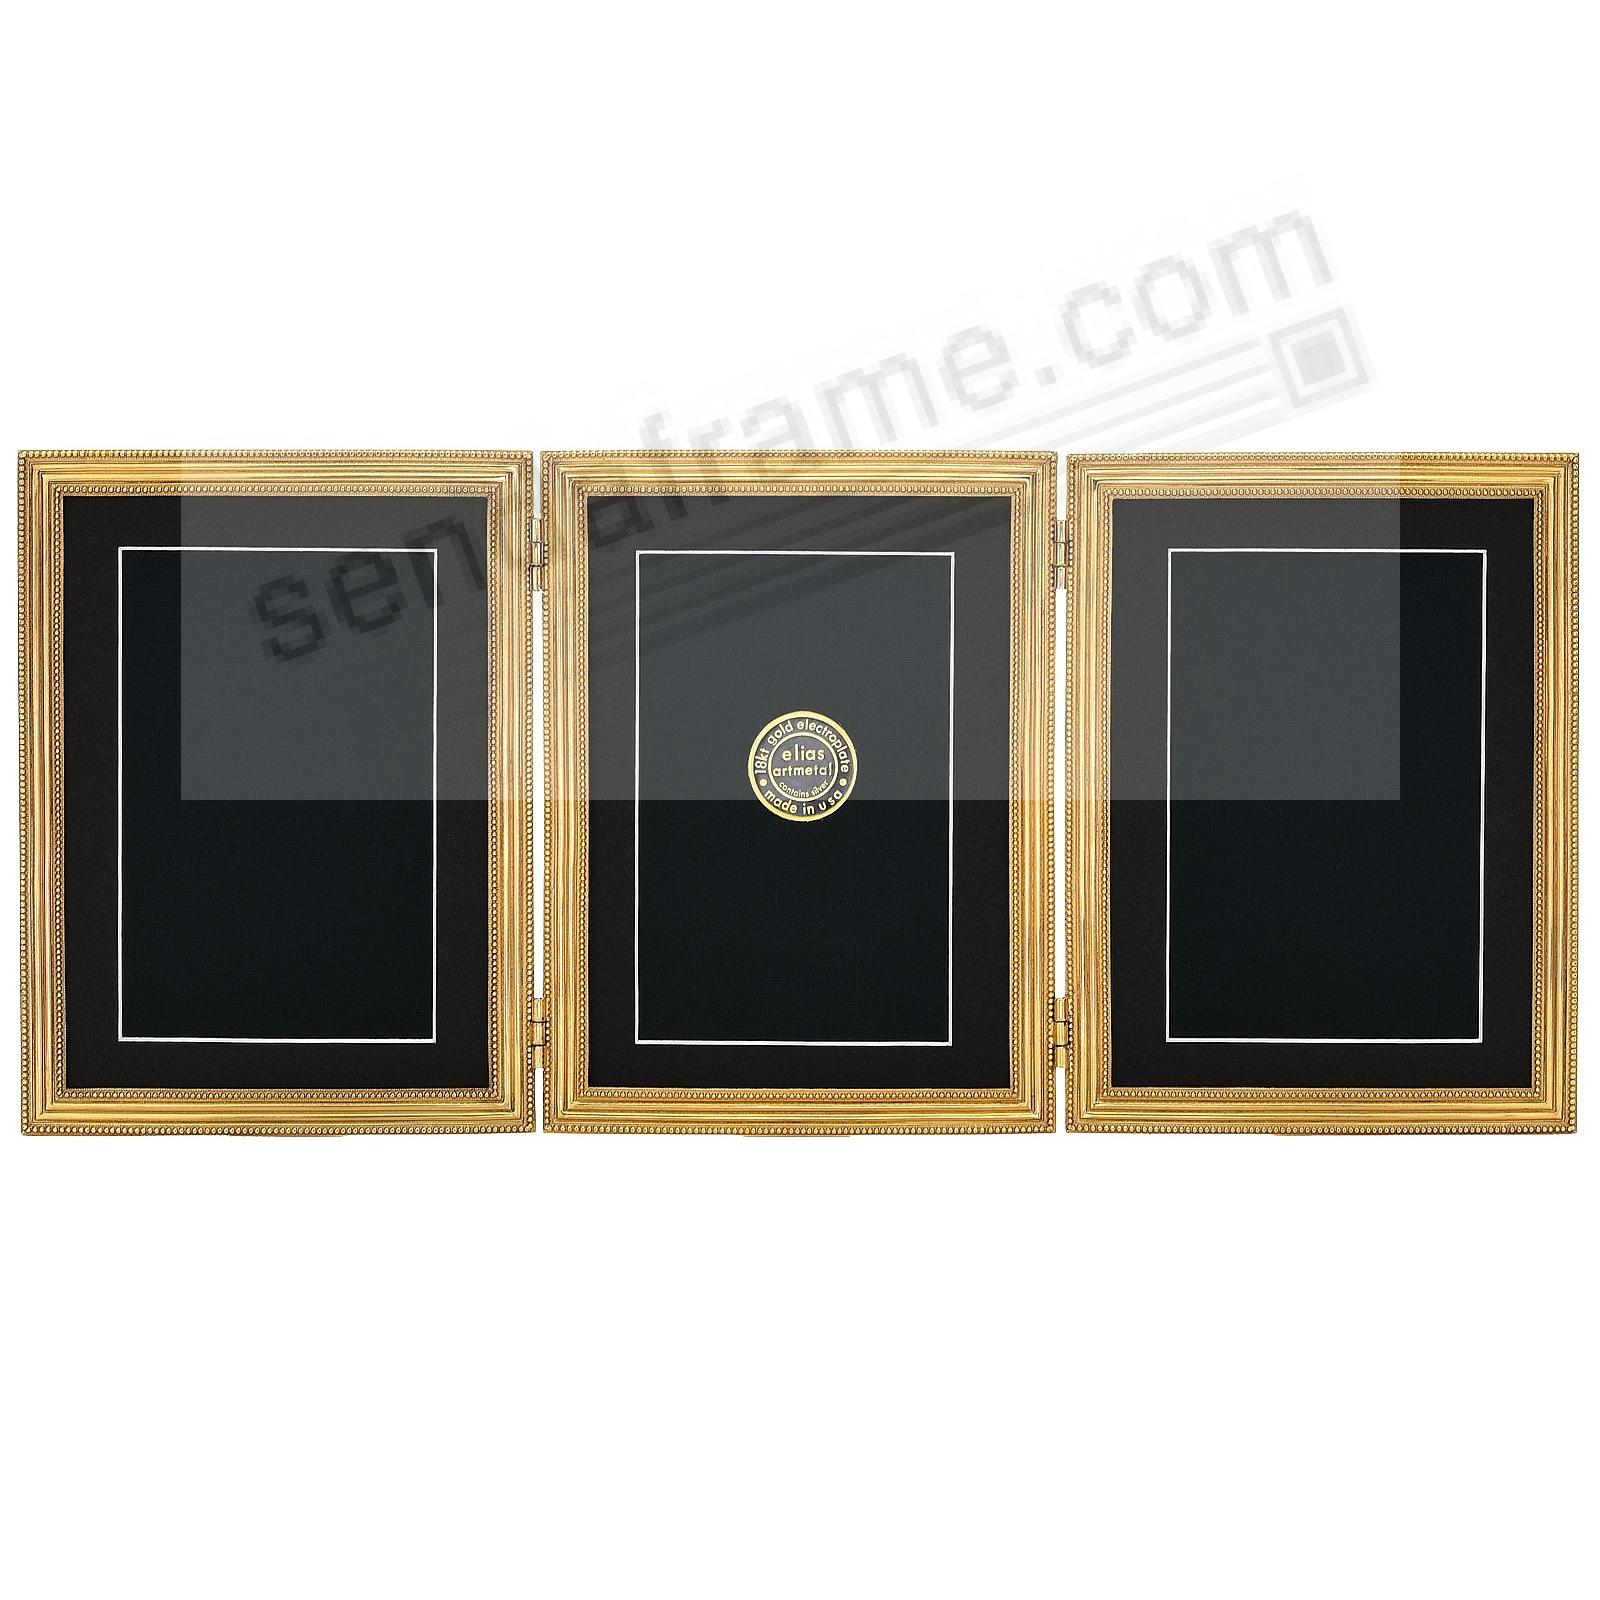 CLASSICO TRIPLE Hinged 4x6/3½x5 frame in fine 18kt gold vermeil by Elias Artmetal®